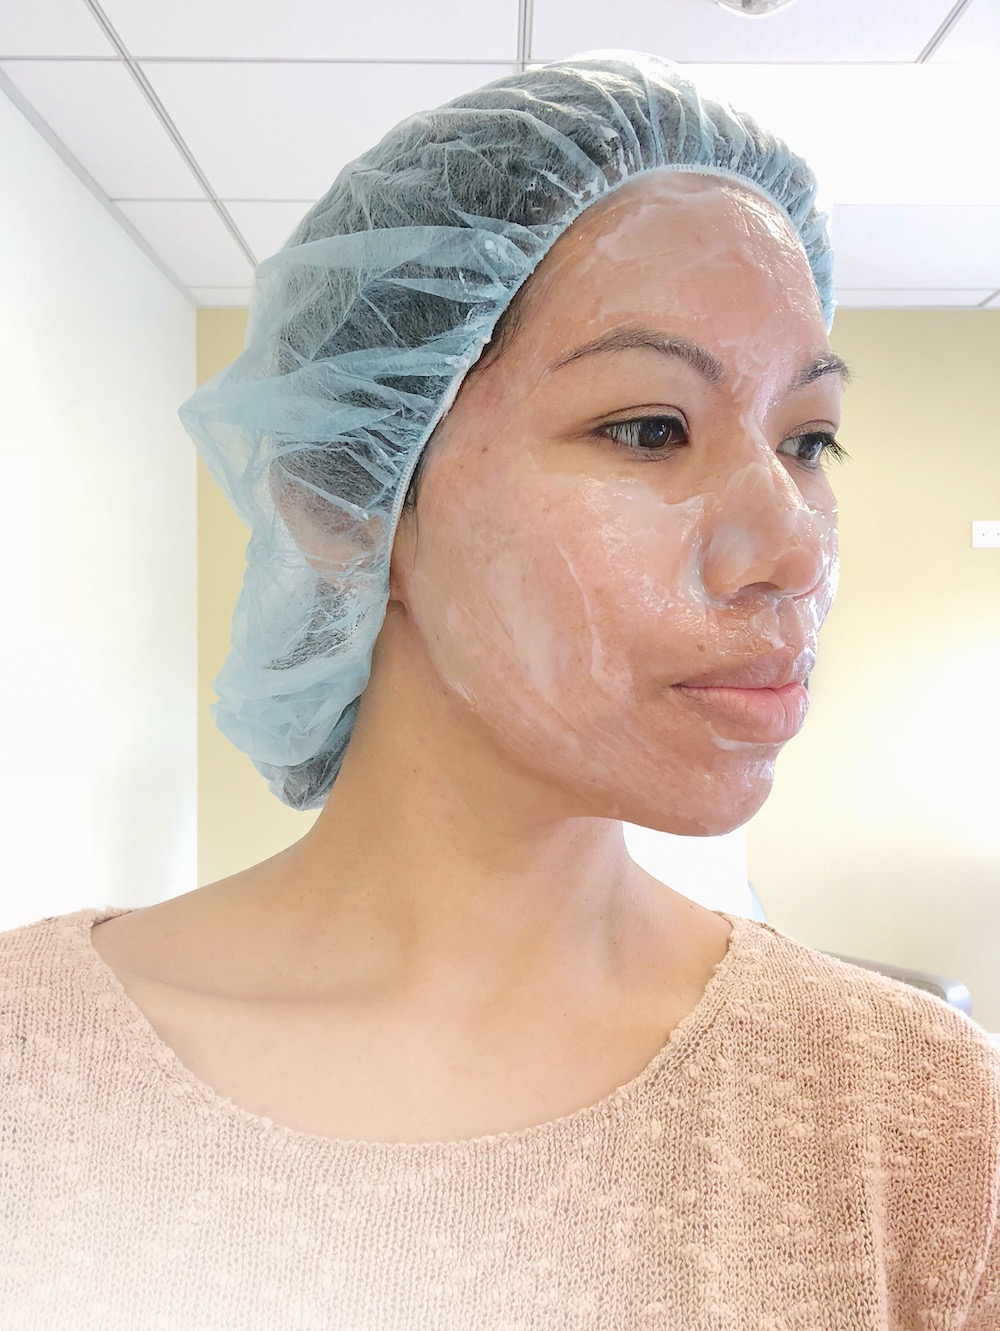 Microneedling with PRP at CosmetiCare to remove acne scars, uneven skin texture and large pores.   livingmividaloca.com   #cosmeticare #beautytreatments #spatreatments